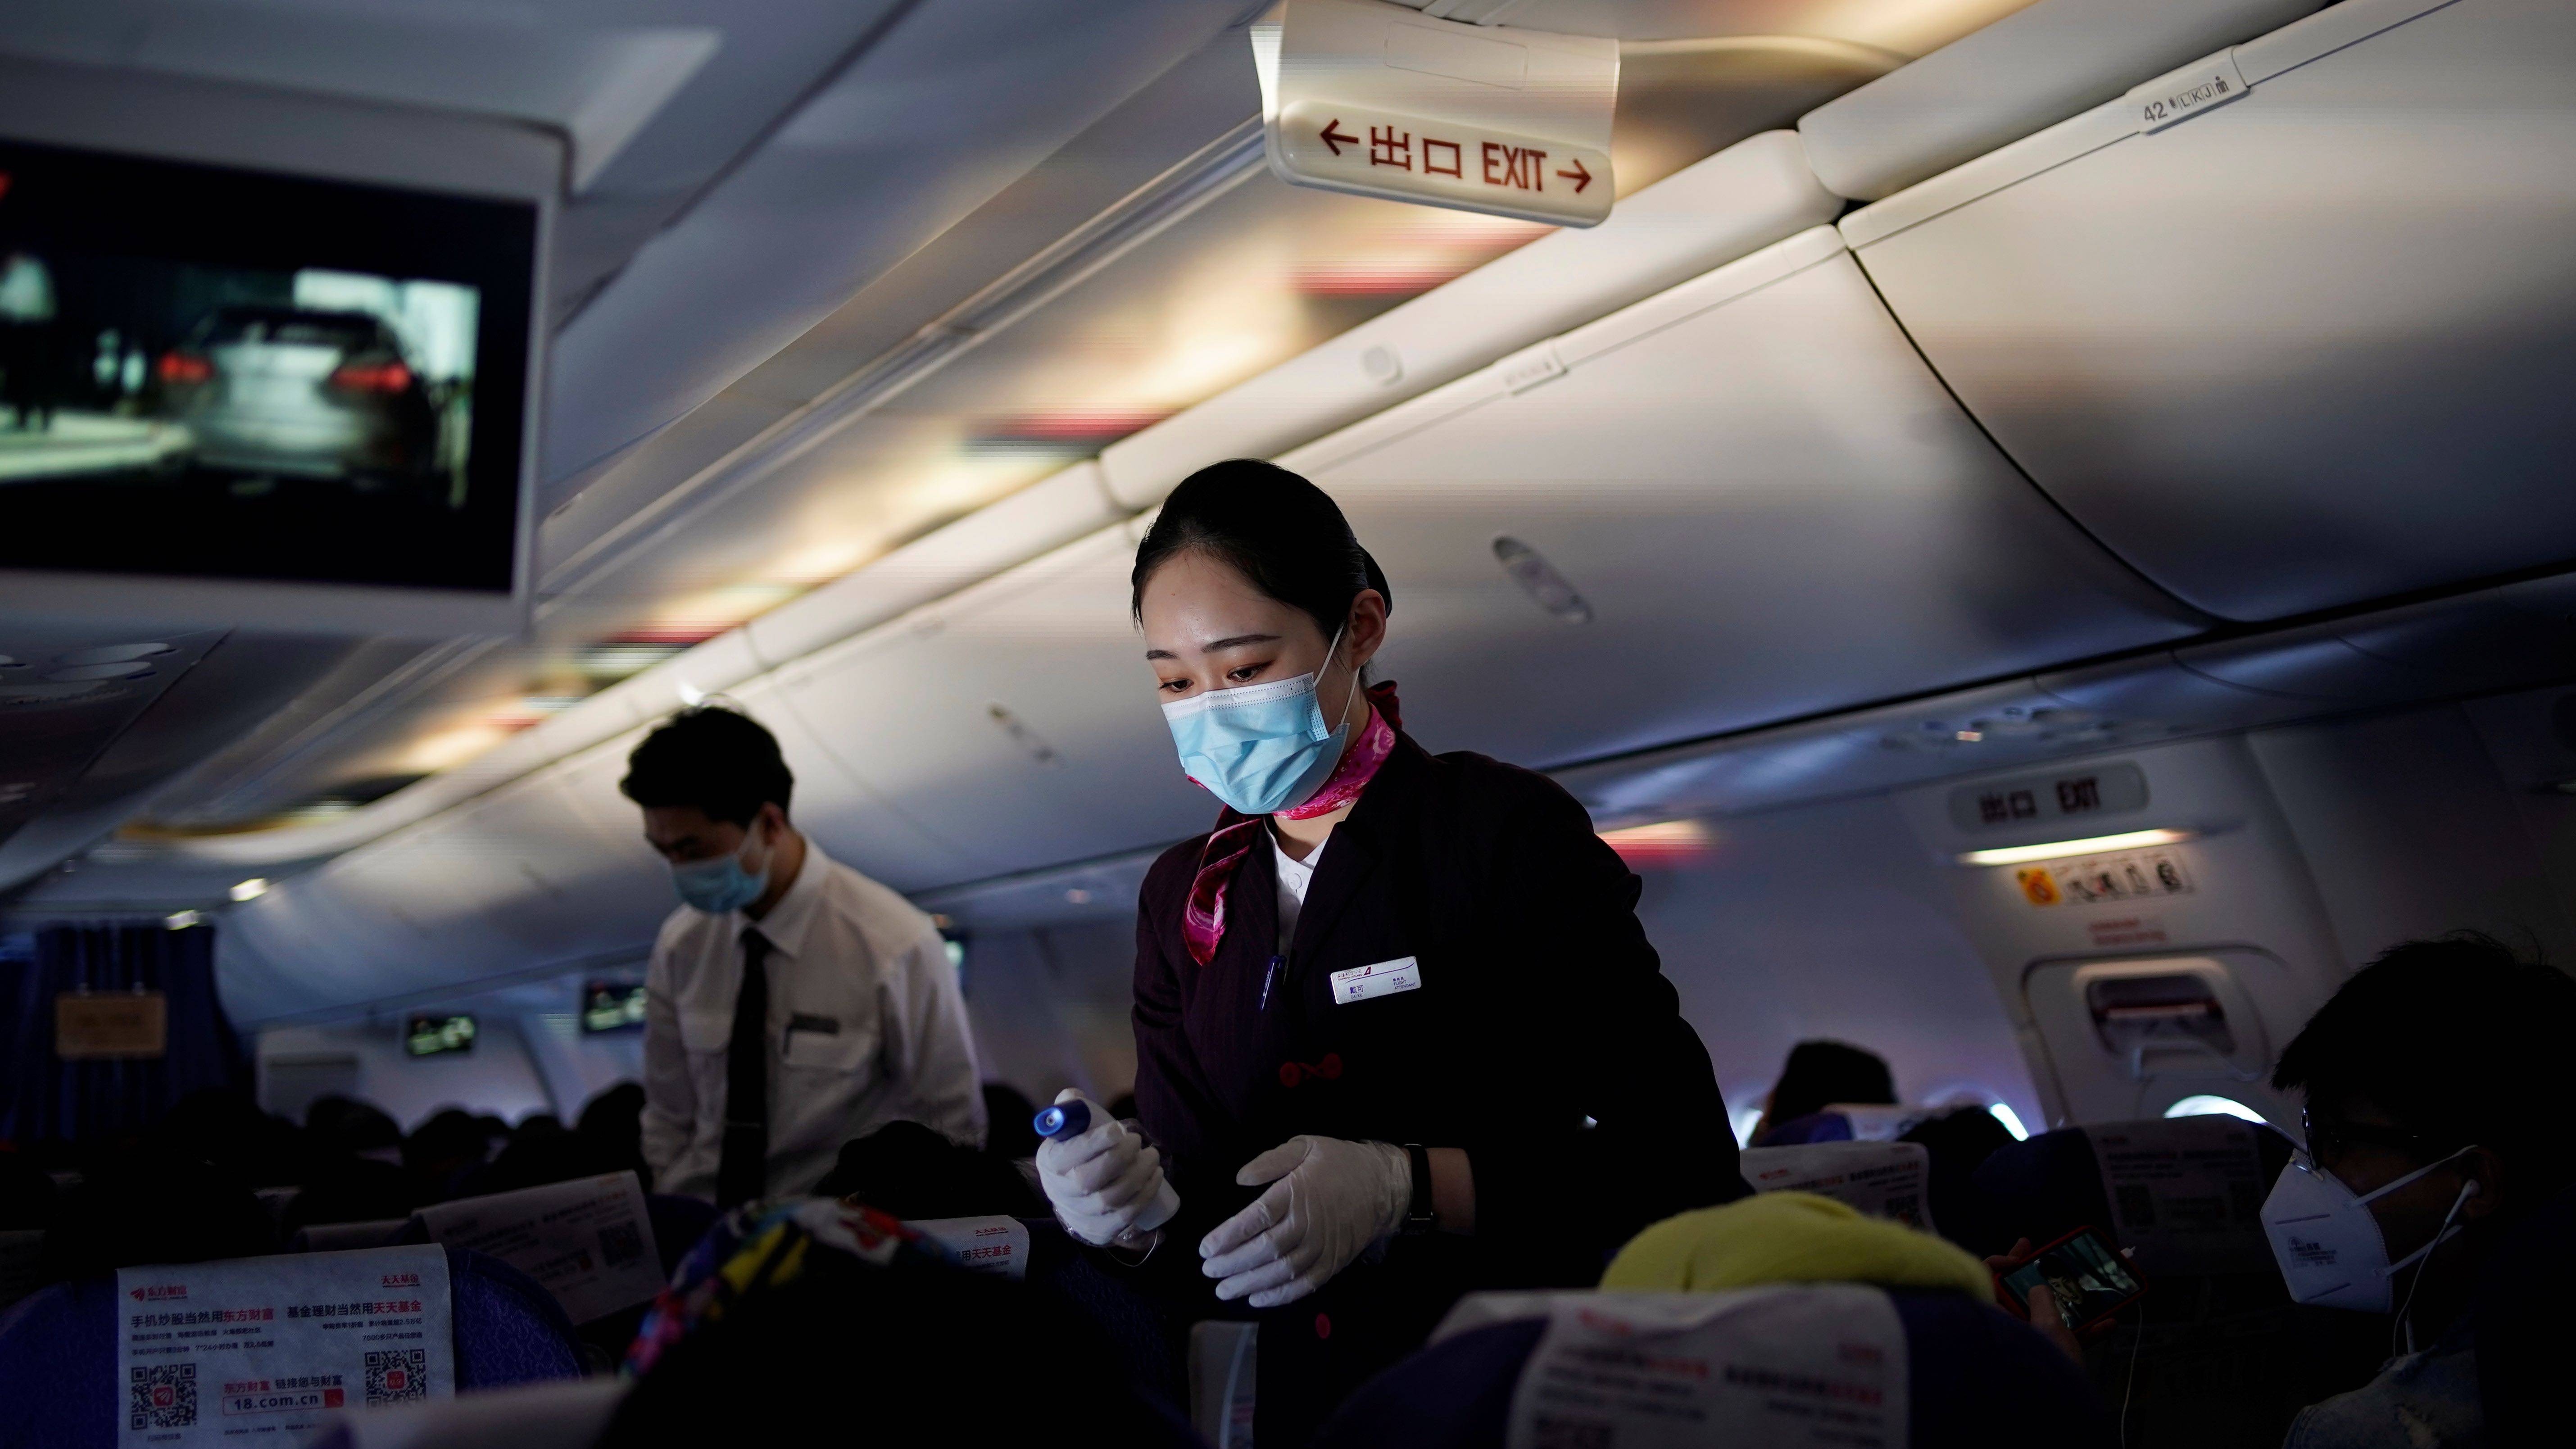 A flight attendant wearing a face mask to prevent the spread of coronavirus disease (COVID-19) takes body temperature measurements of passengers with a thermometer on a ShanghaiAirlines flight in Shanghai, China, March 25, 2020.